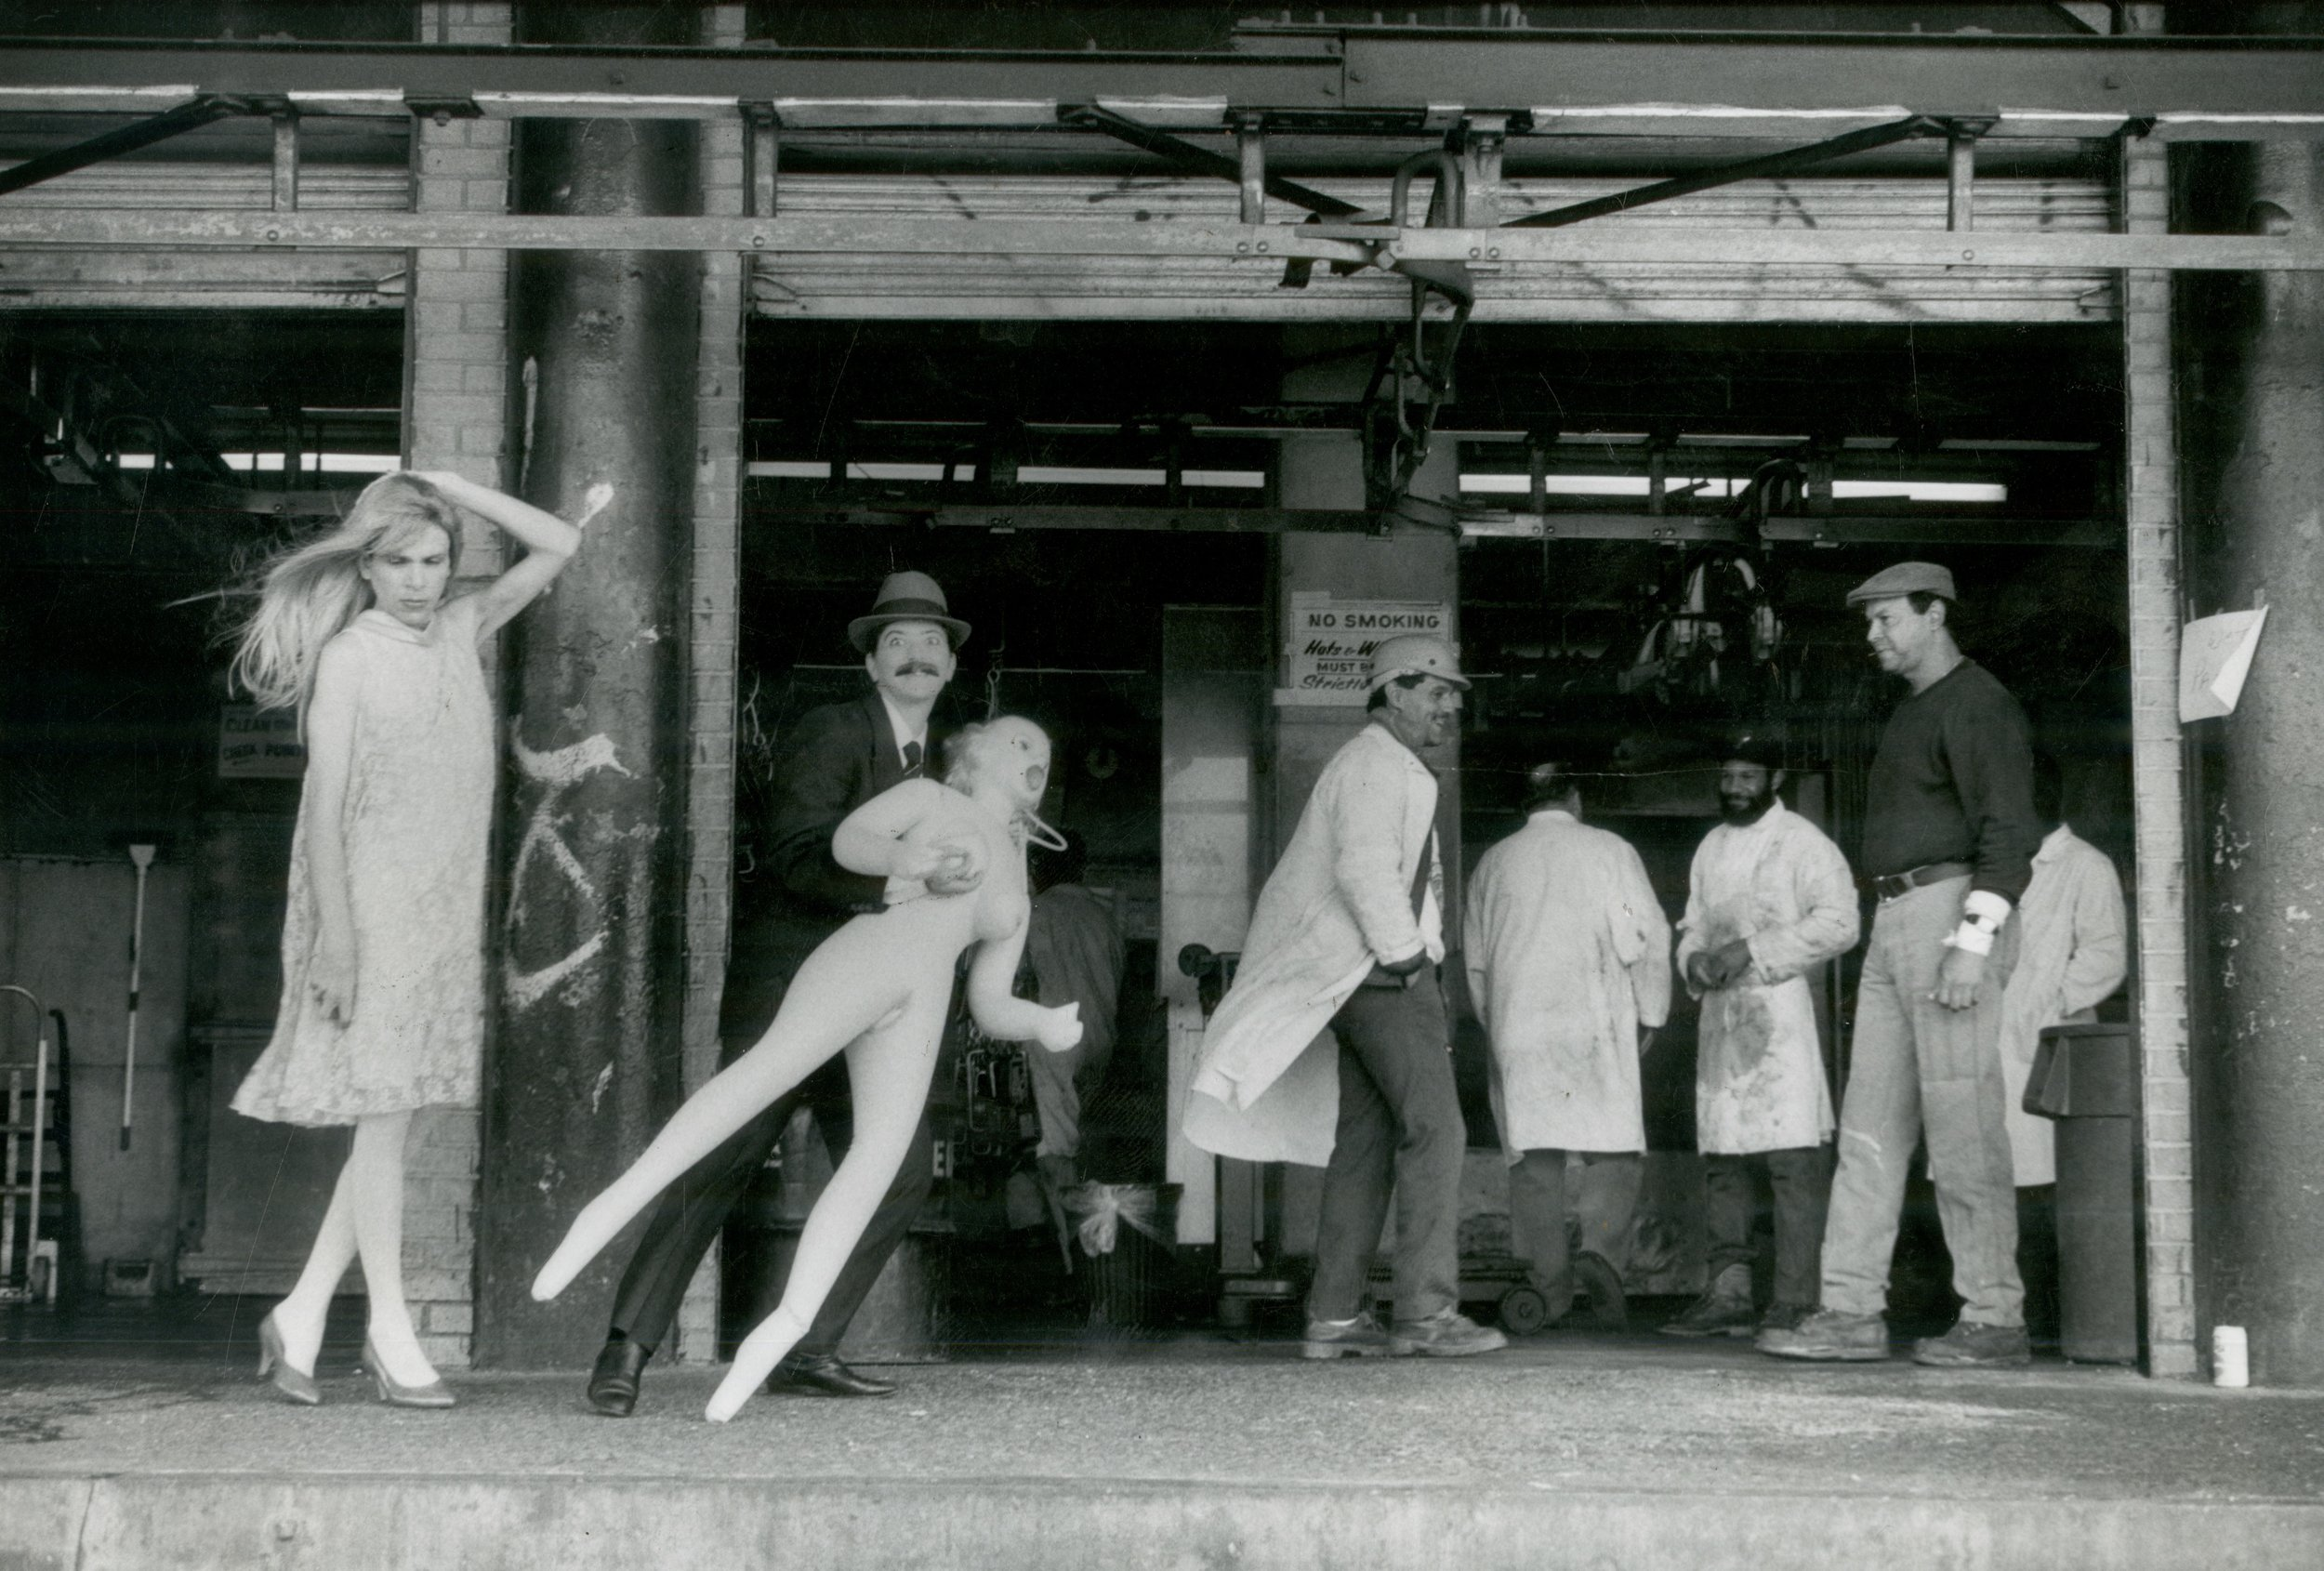 Meat Market , 1990 — in collaboration with Mariette Pathy Allen